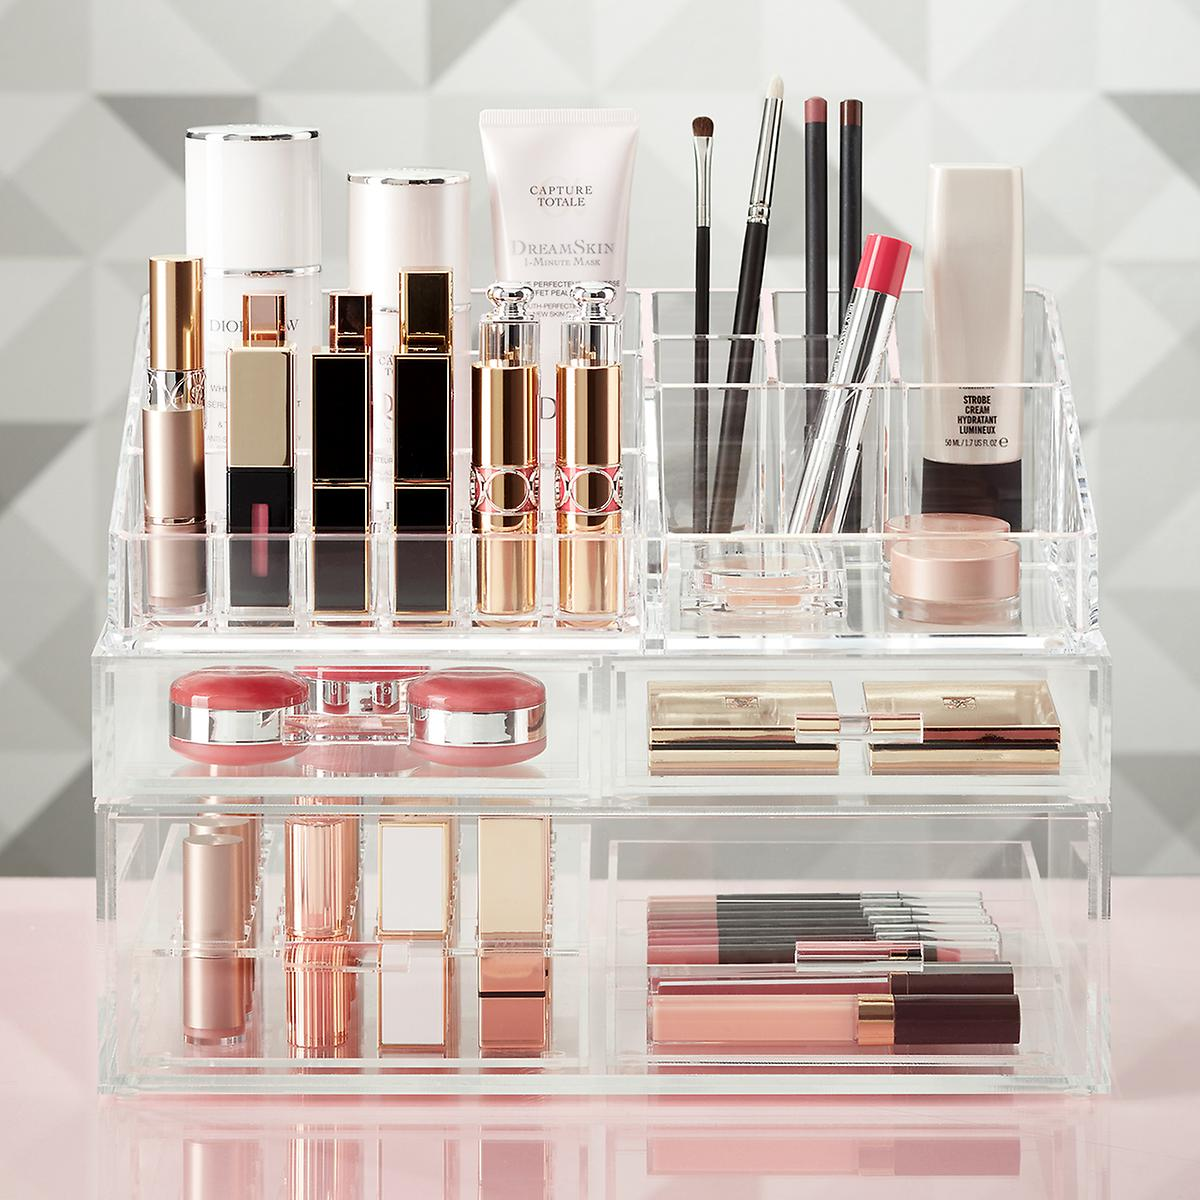 Luxe Acrylic Lipstick u0026 Makeup Storage Kit Sale $85.94 (Retail $109.94) This solution includes (1) Luxe 24-Section Divided Lipstick Insert (1) Luxe Short ... & lolau0027s secret beauty blog: The Container Store Luxe Acrylic Makeup ...